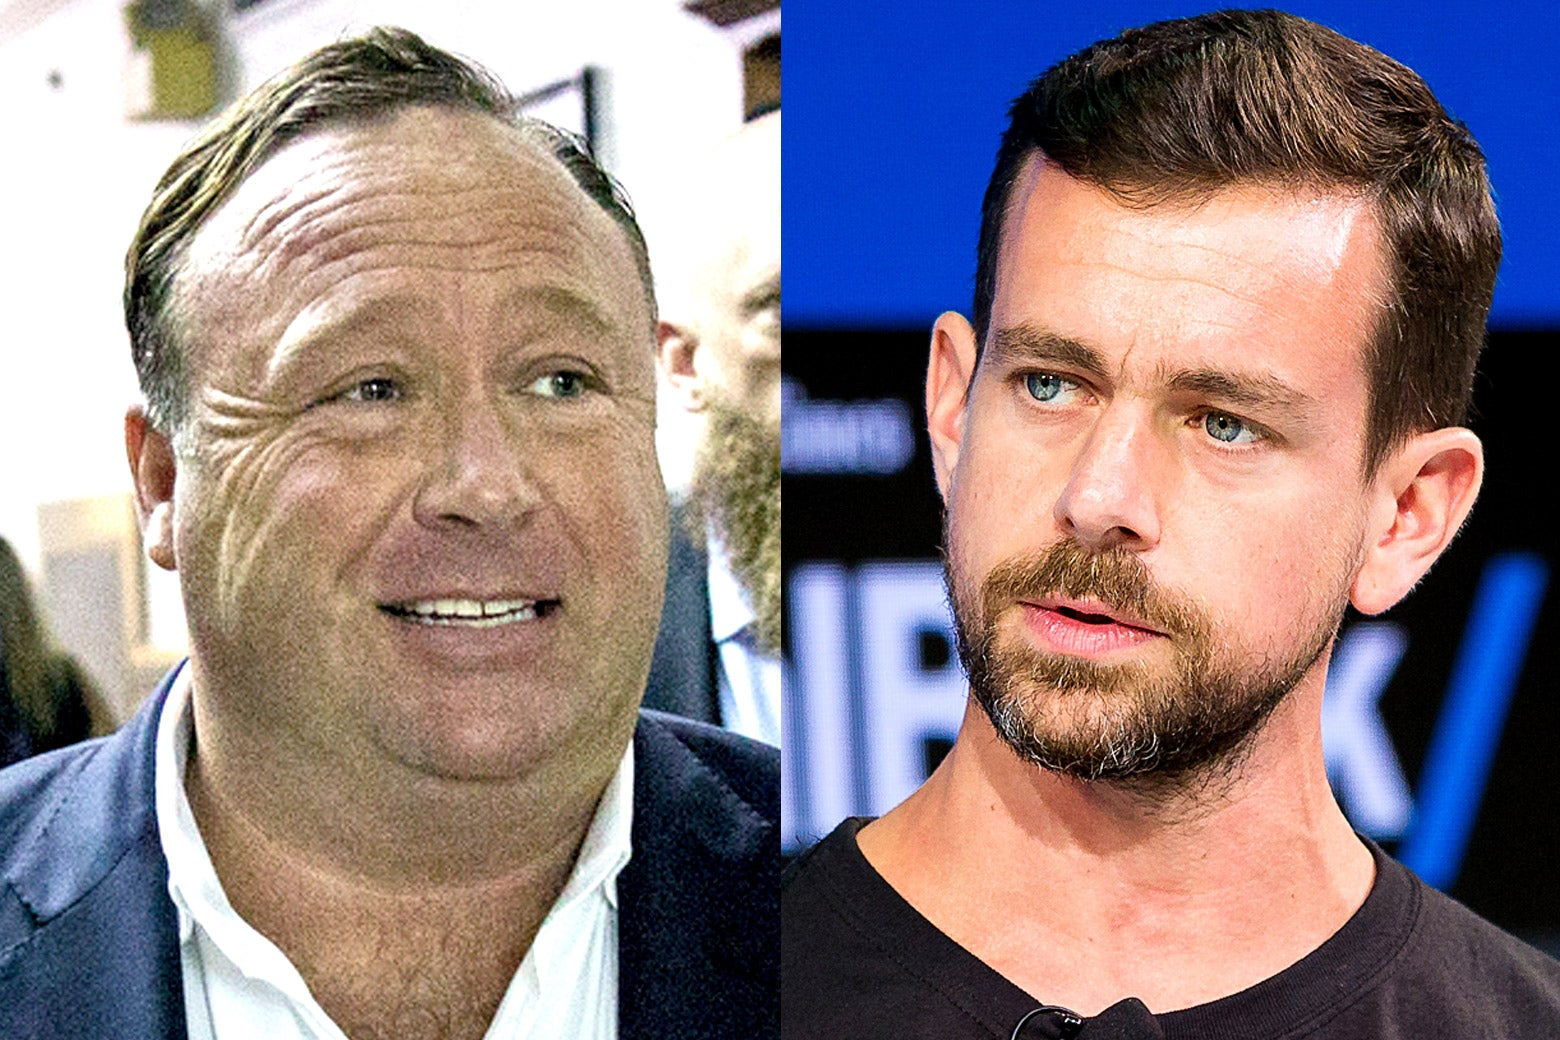 Alex Jones and Jack Dorsey, a diptych.